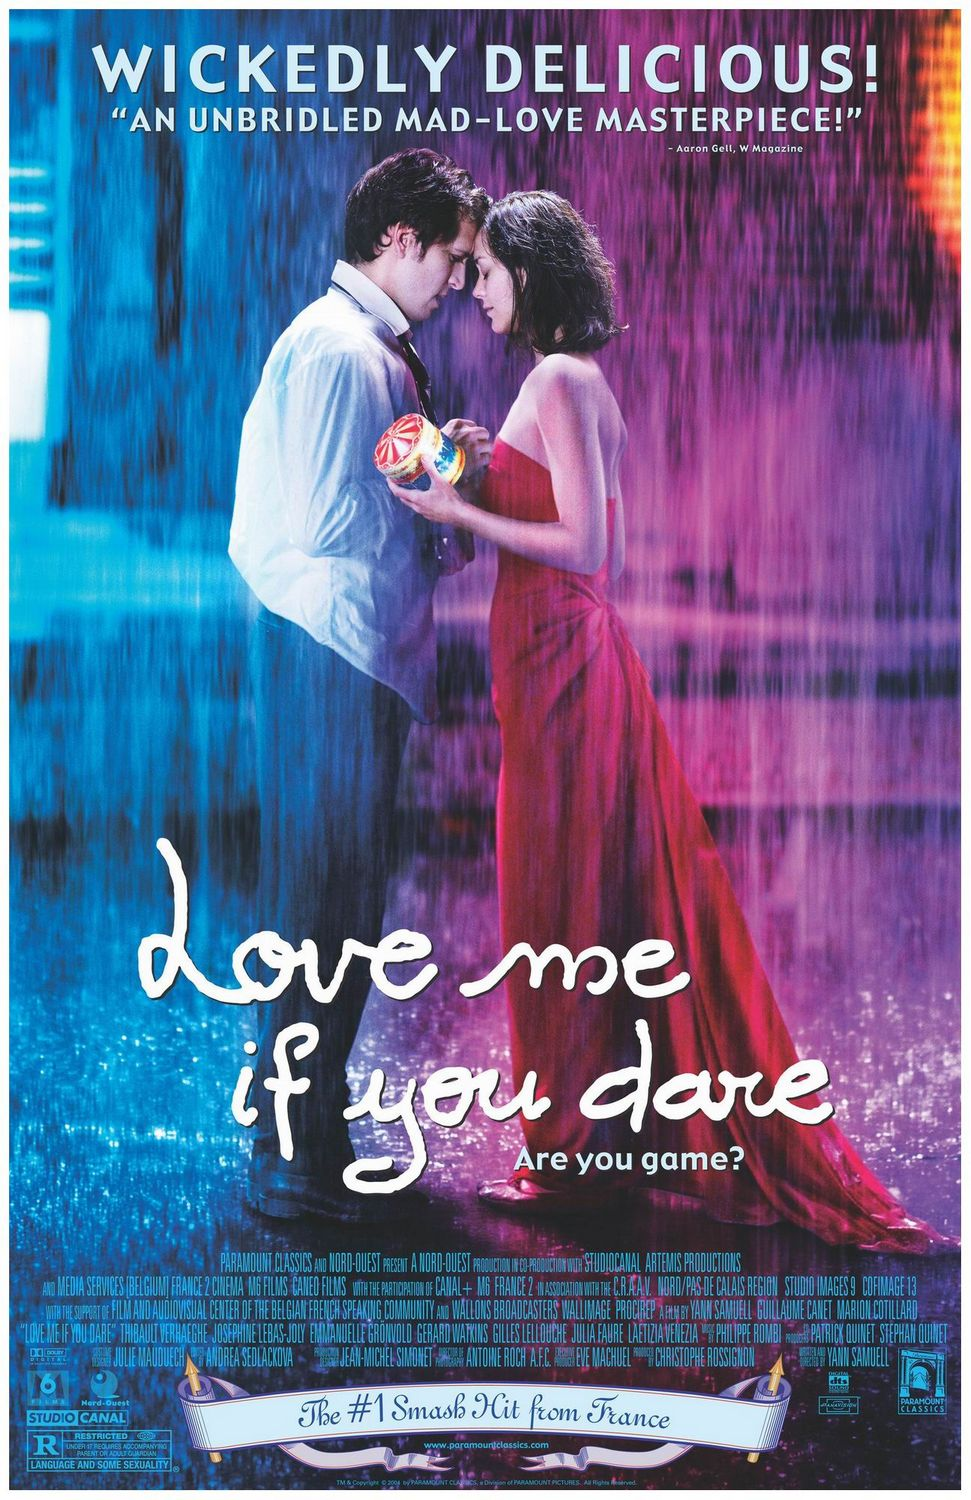 Love Me Like You Do Dvd Blu Ray Oder Vod Leihen: Love Me If You Dare AKA Jeux D'enfants 2003 BluRay 720p